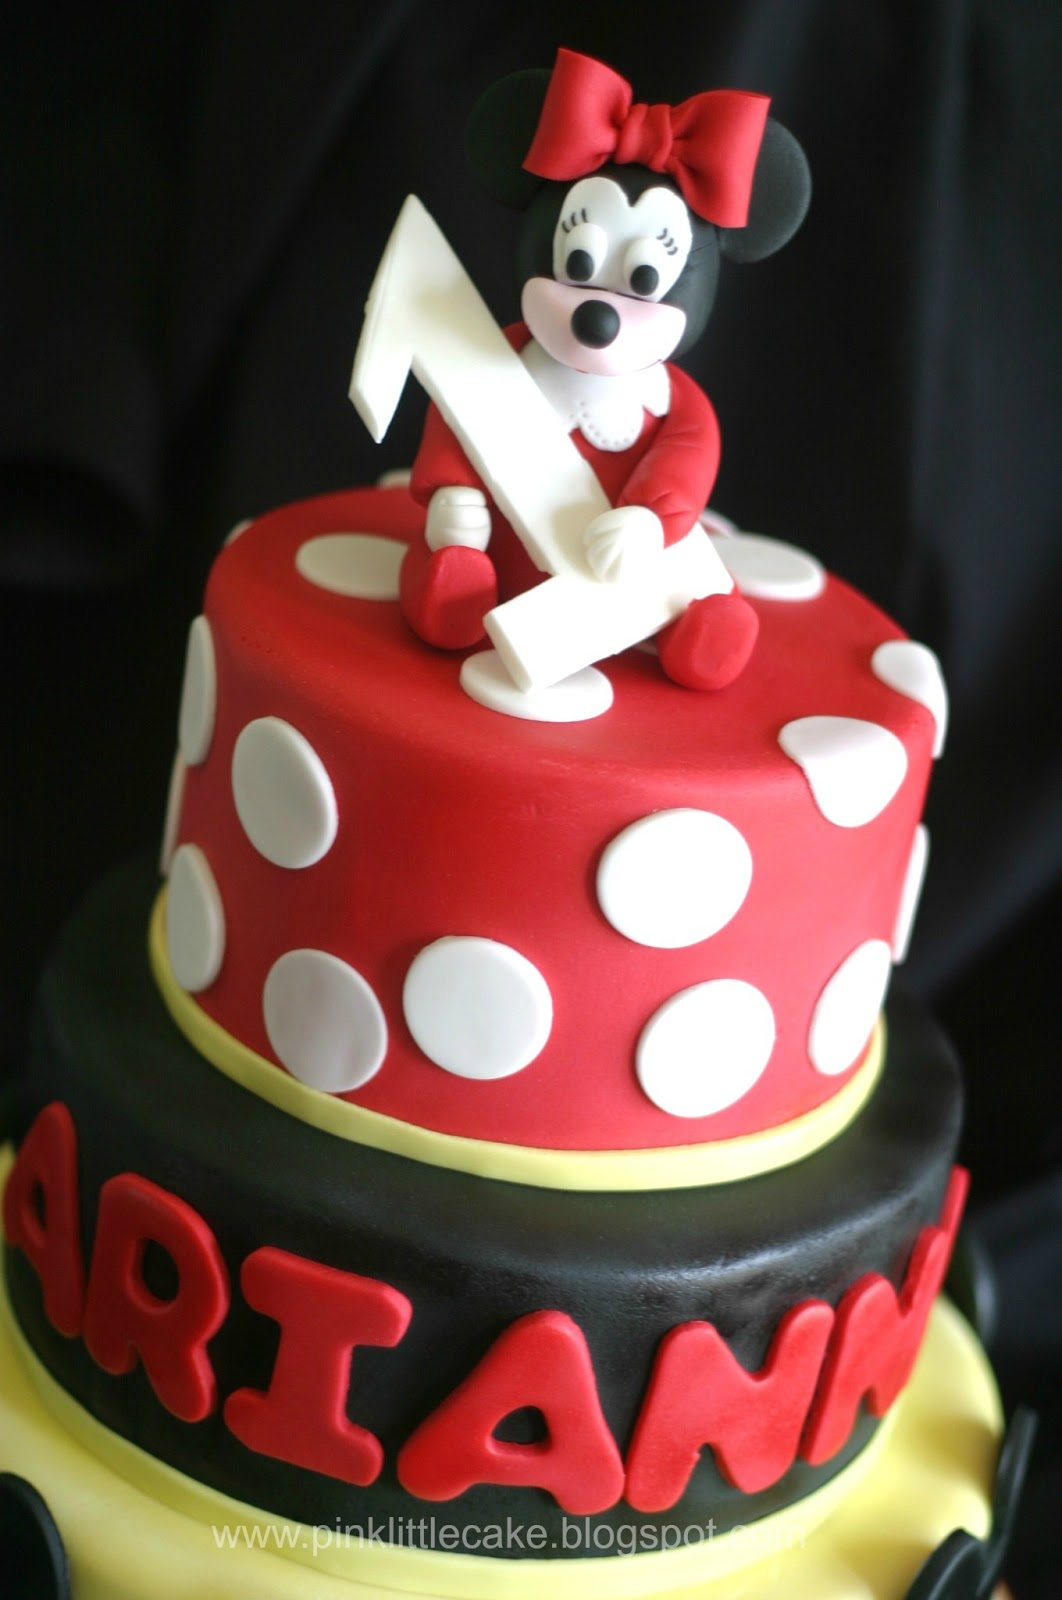 My Pink Little Cake Minnie Mouse With Red Pjs 1st Birthday Cake